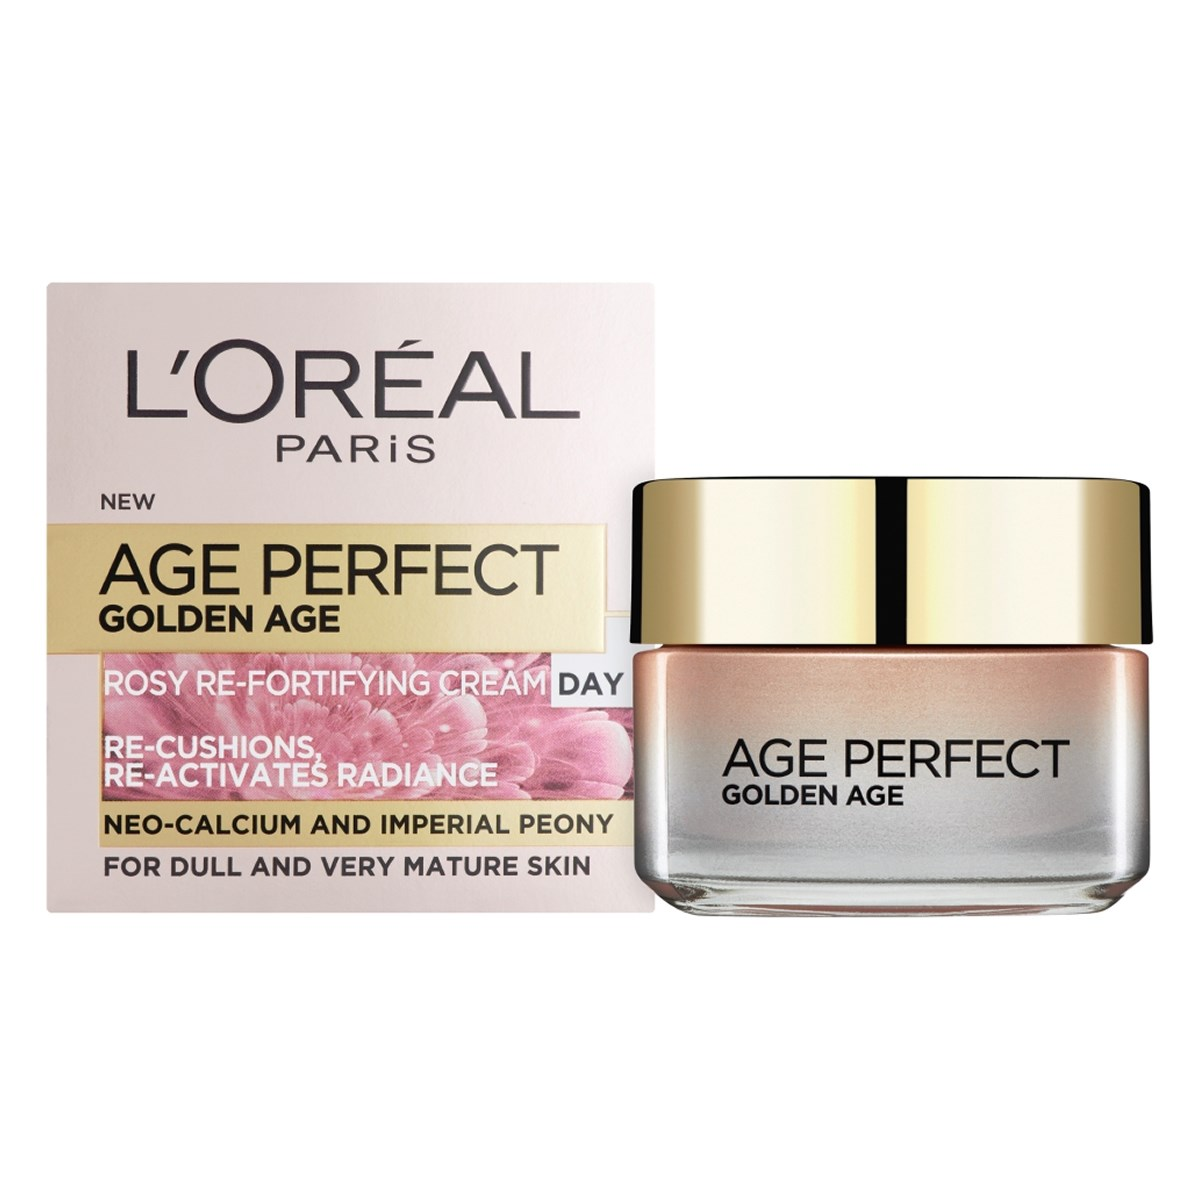 L'Oreal Paris Age Perfect Golden Age Rosy Re-Fortifying Day Cream